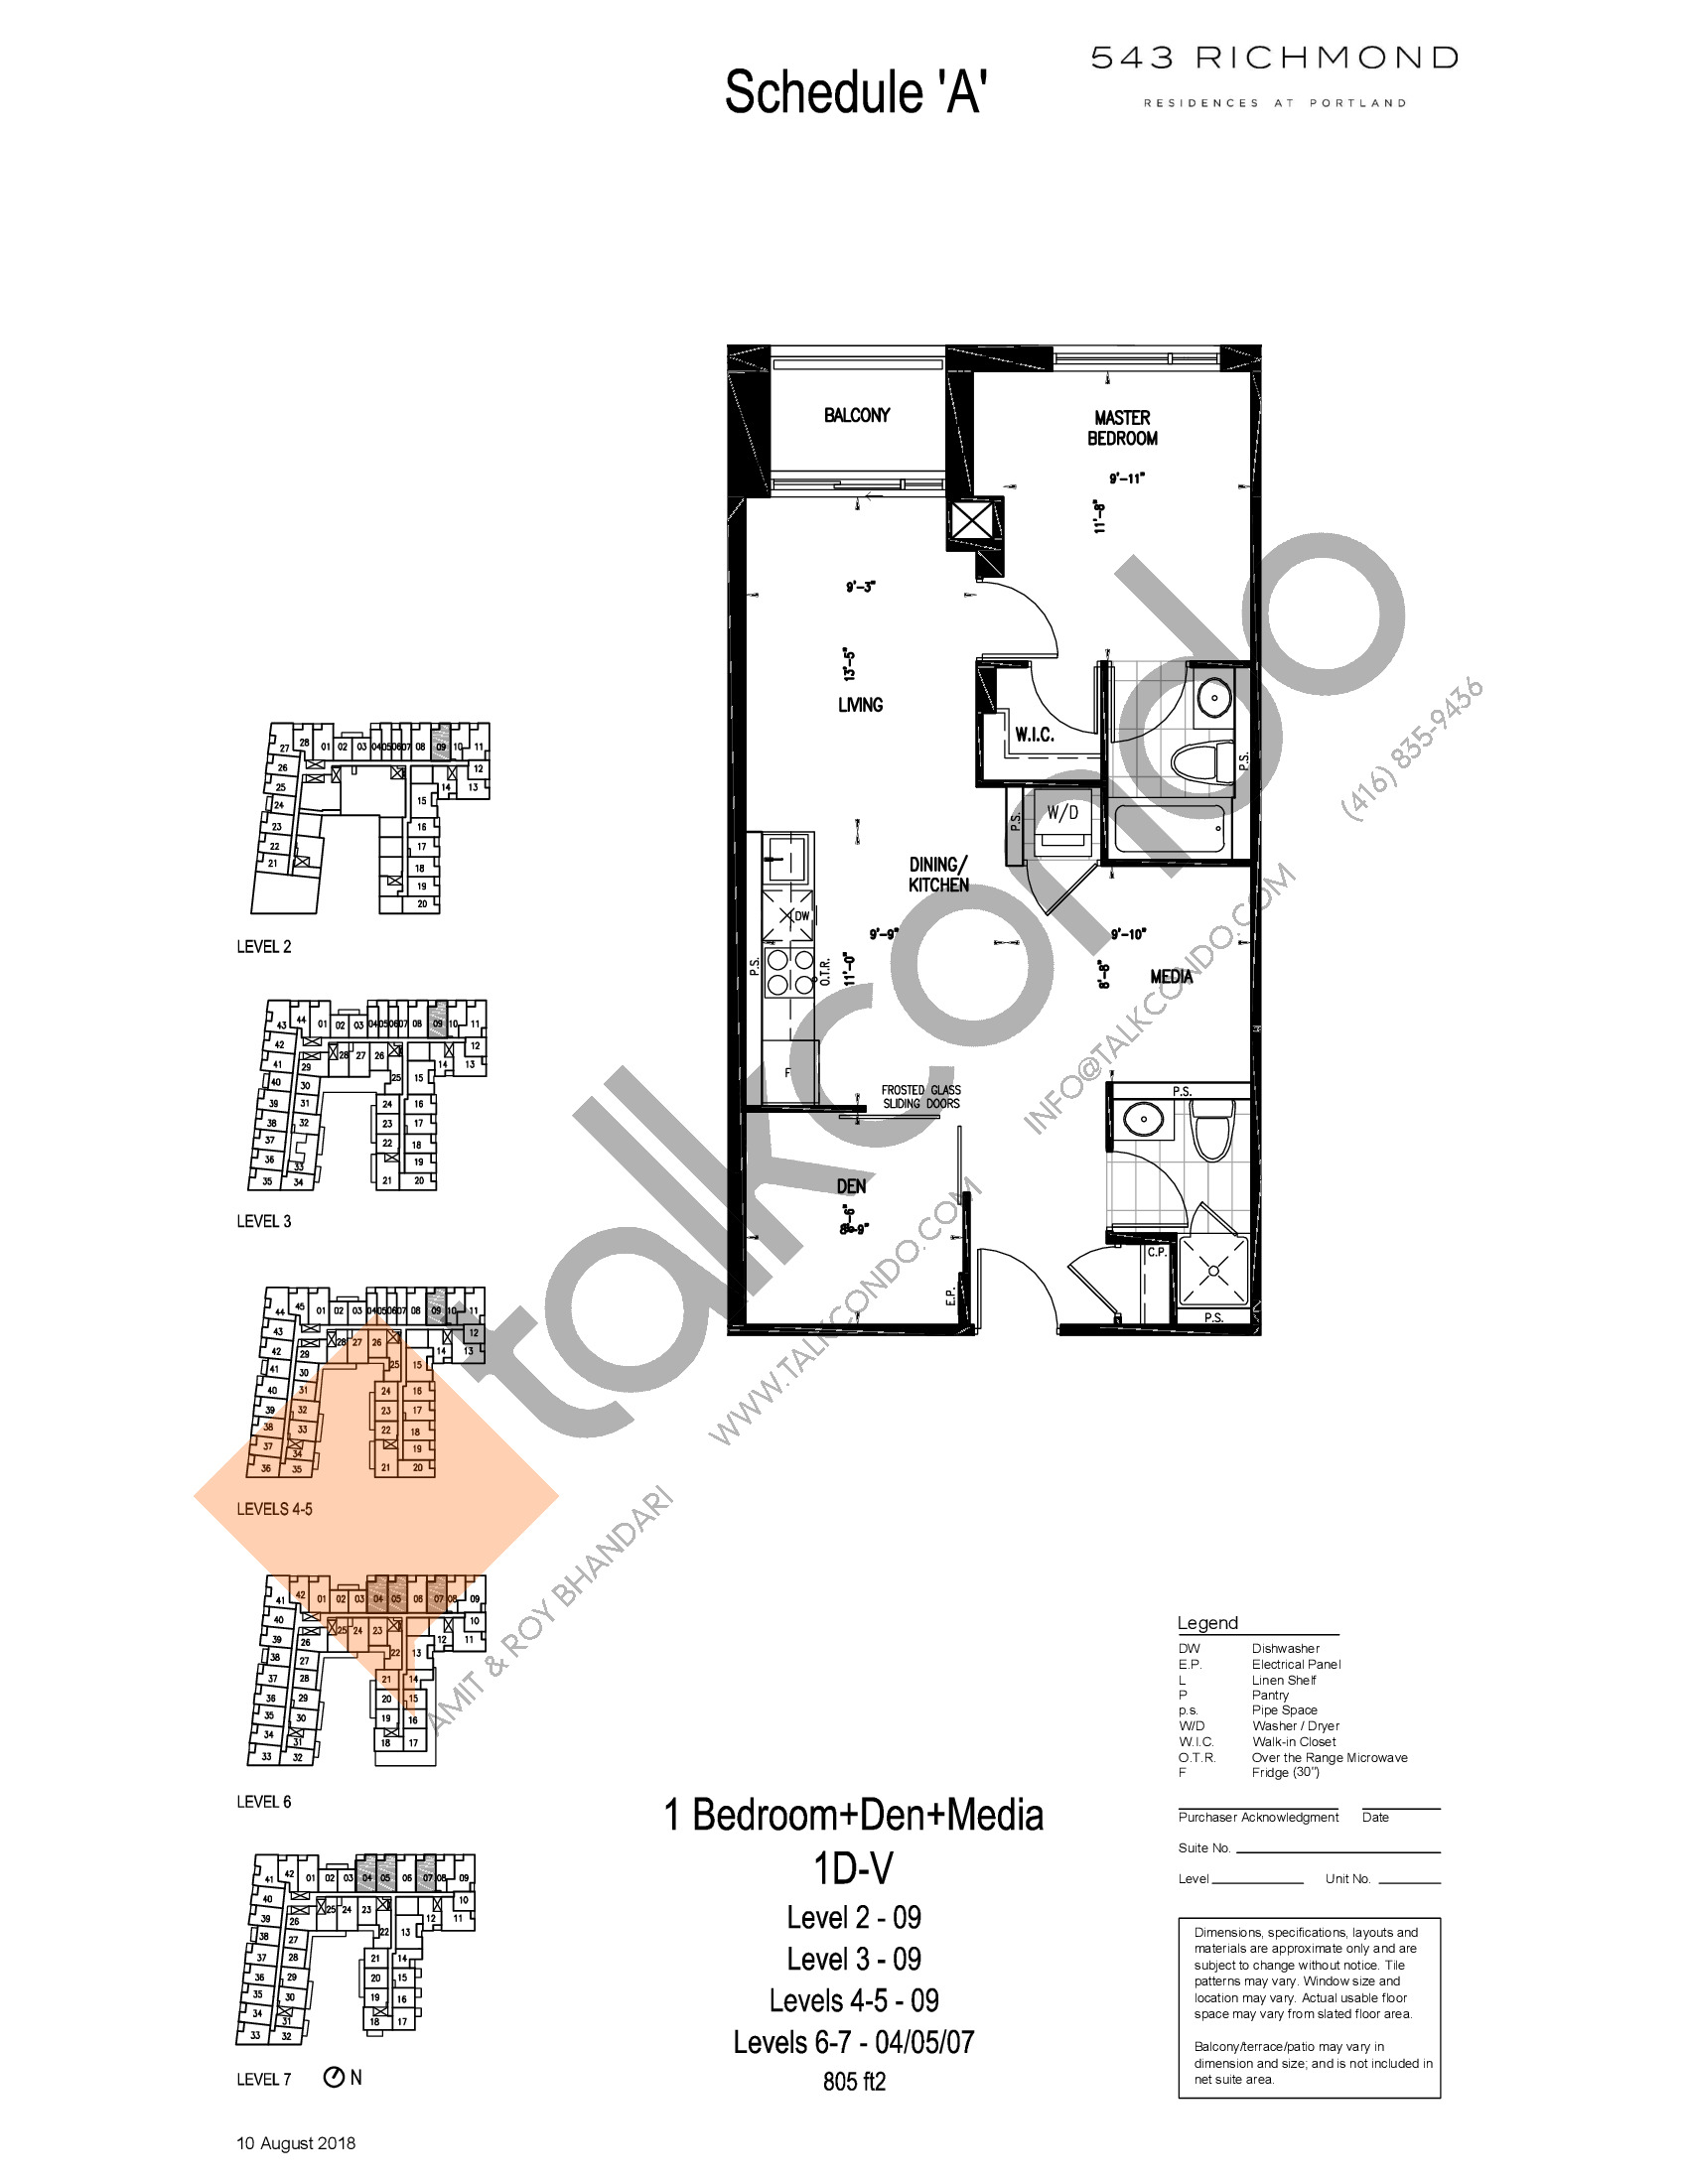 1D-V Floor Plan at 543 Richmond St Condos - 805 sq.ft